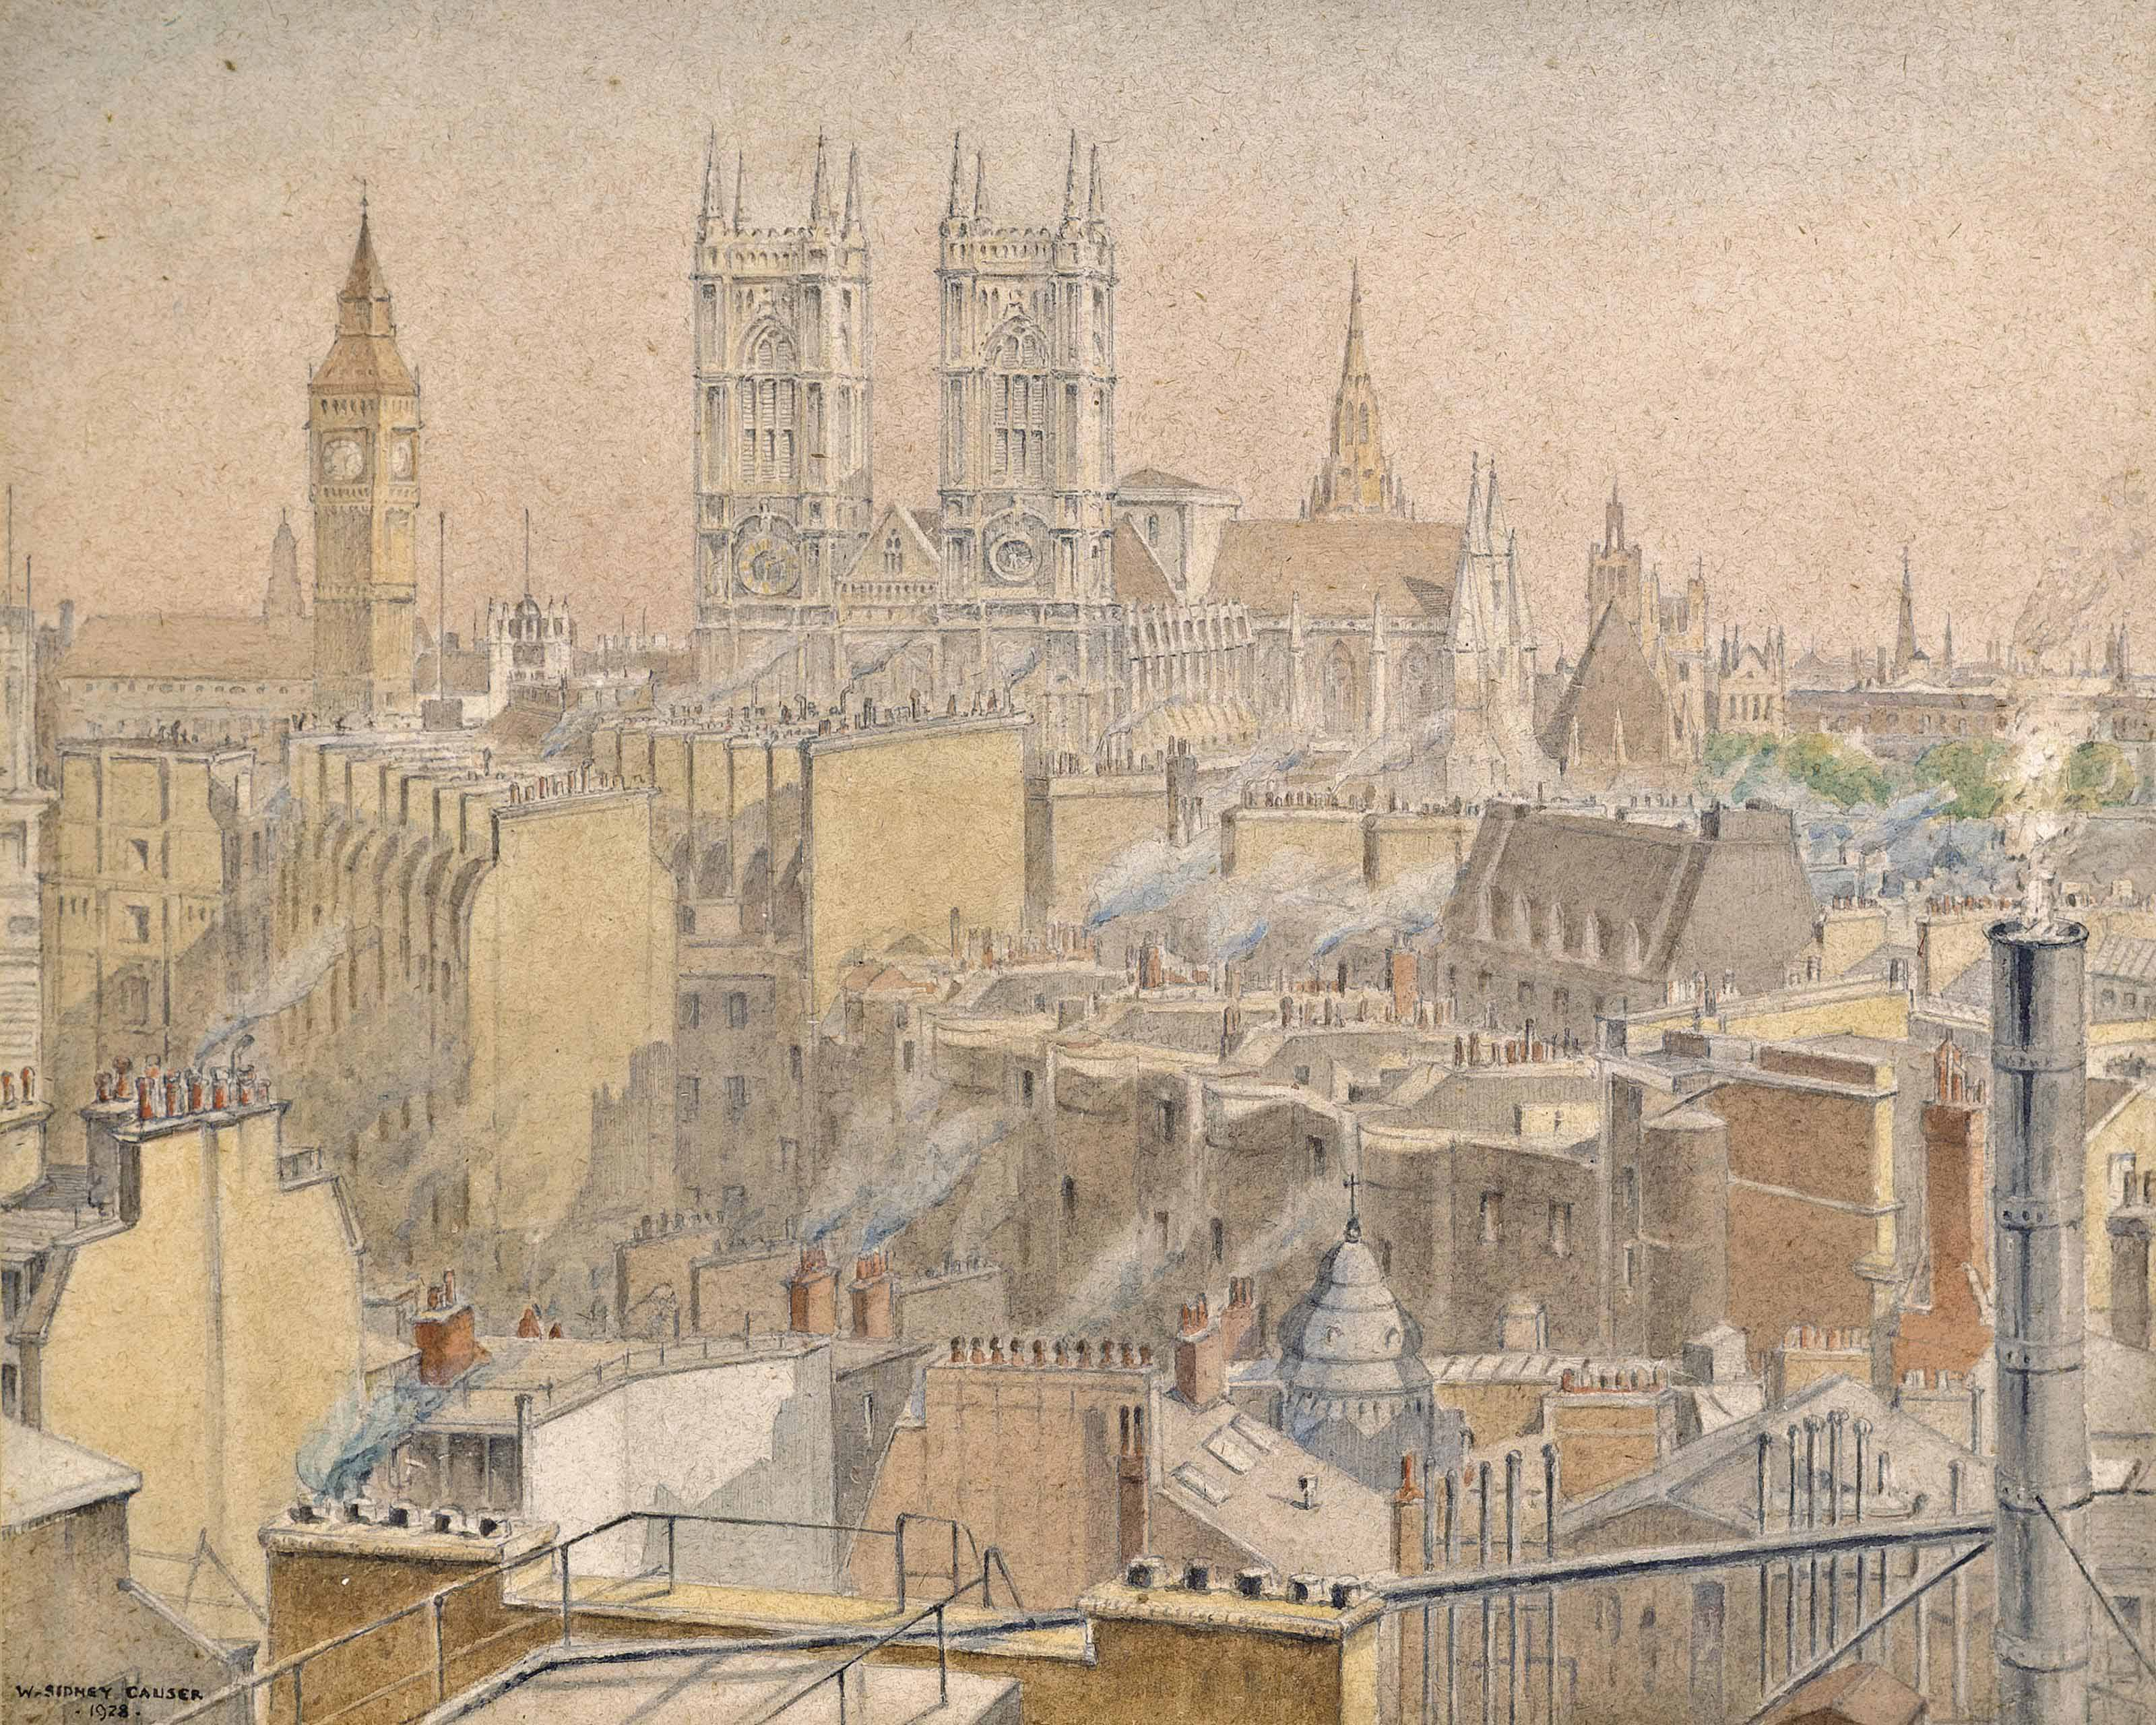 View of Kensington and the Royal Albert Hall on a spring evening; View of Westminster Cathedral (illustrated); and View across Westminster from Broadway Courts